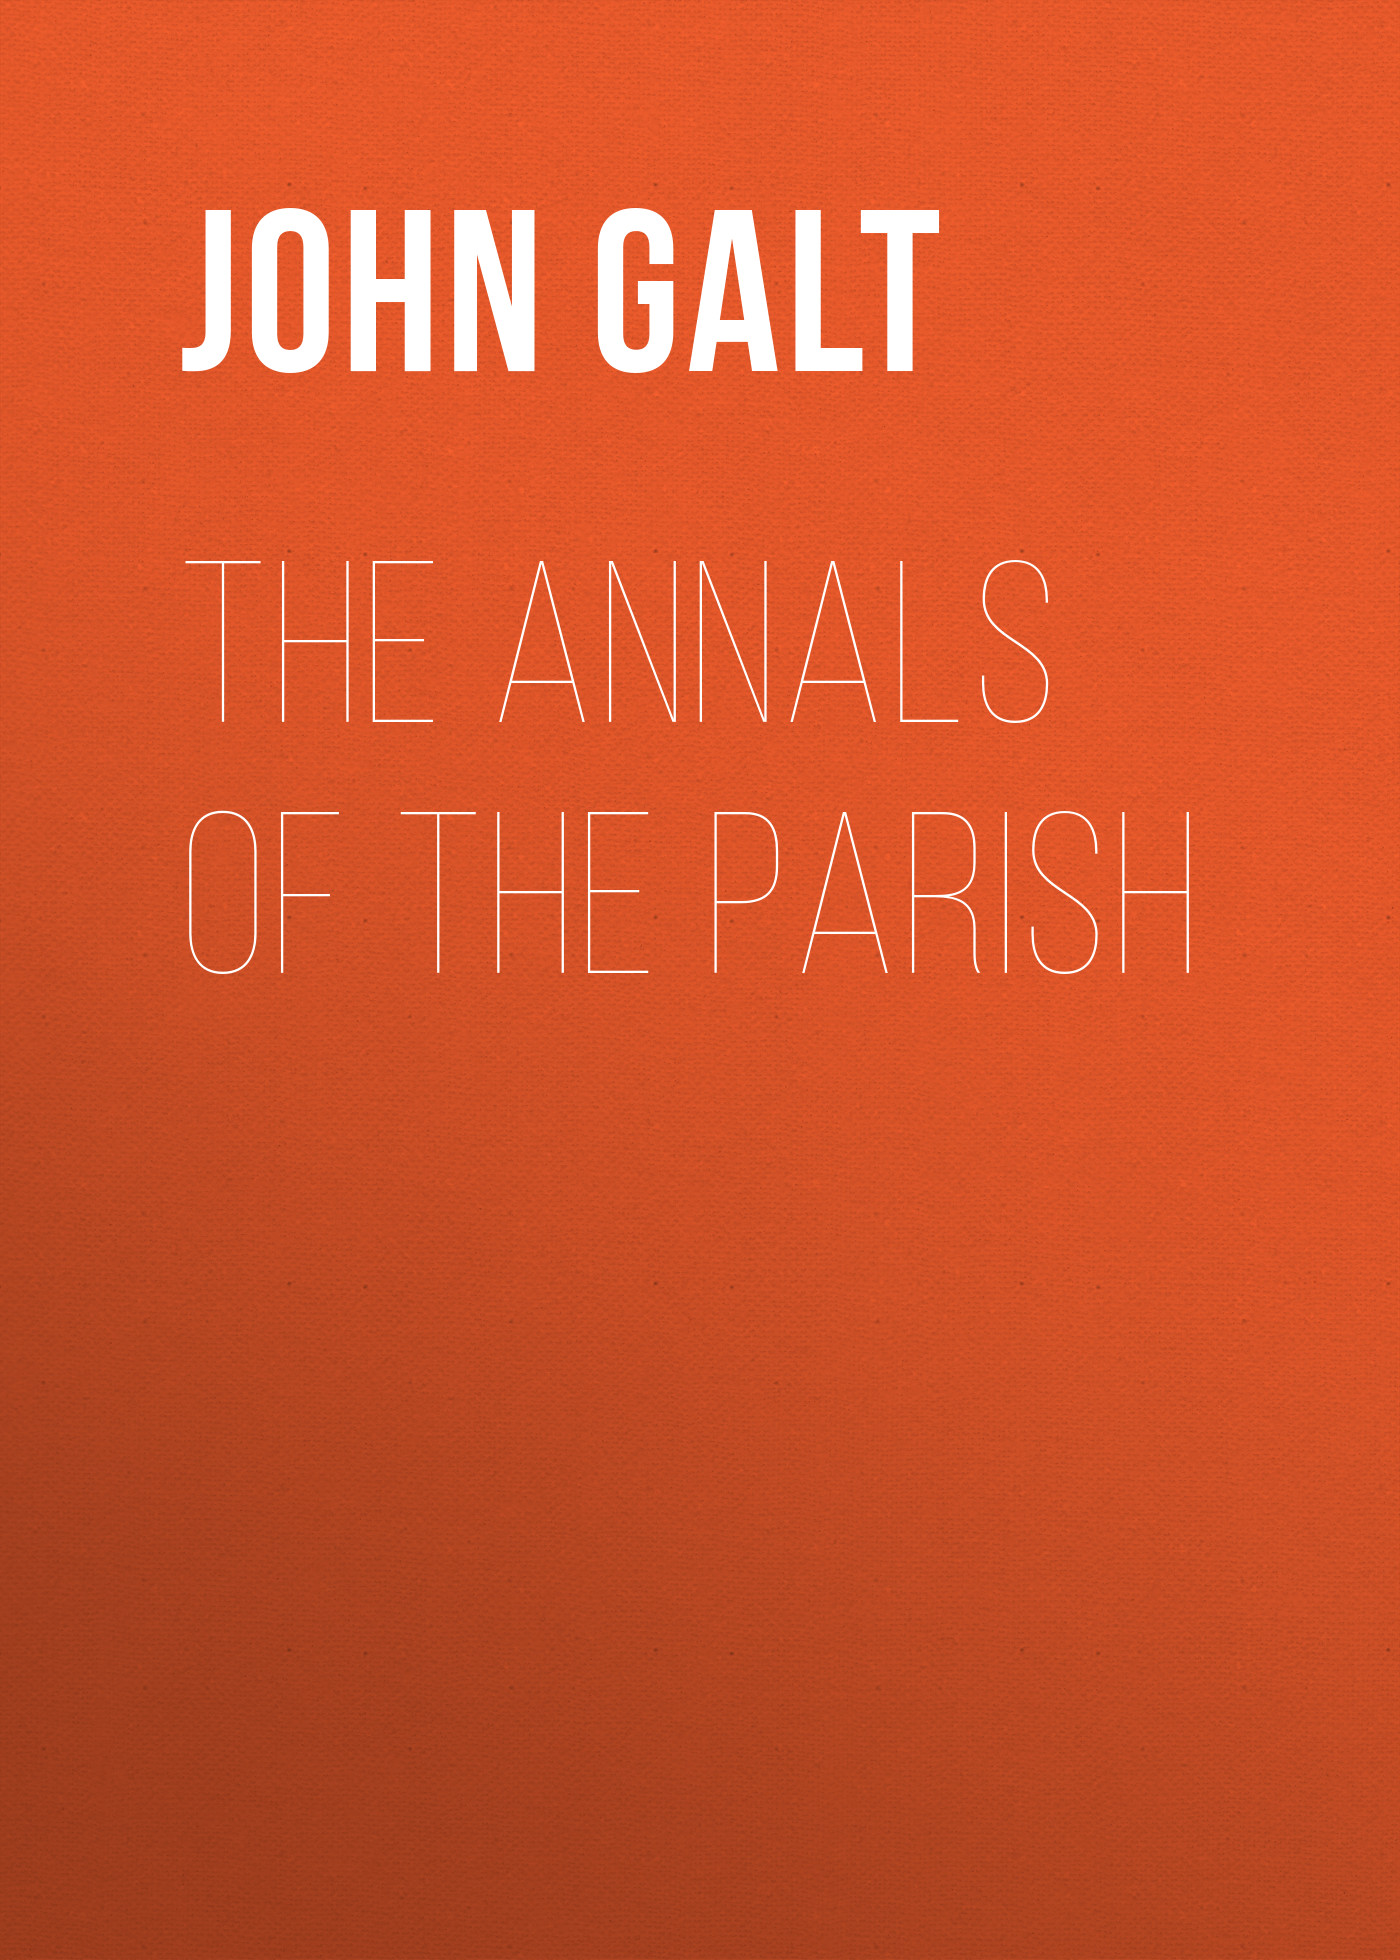 John Galt The Annals of the Parish donald luskin i am john galt today s heroic innovators building the world and the villainous parasites destroying it isbn 9781118100967